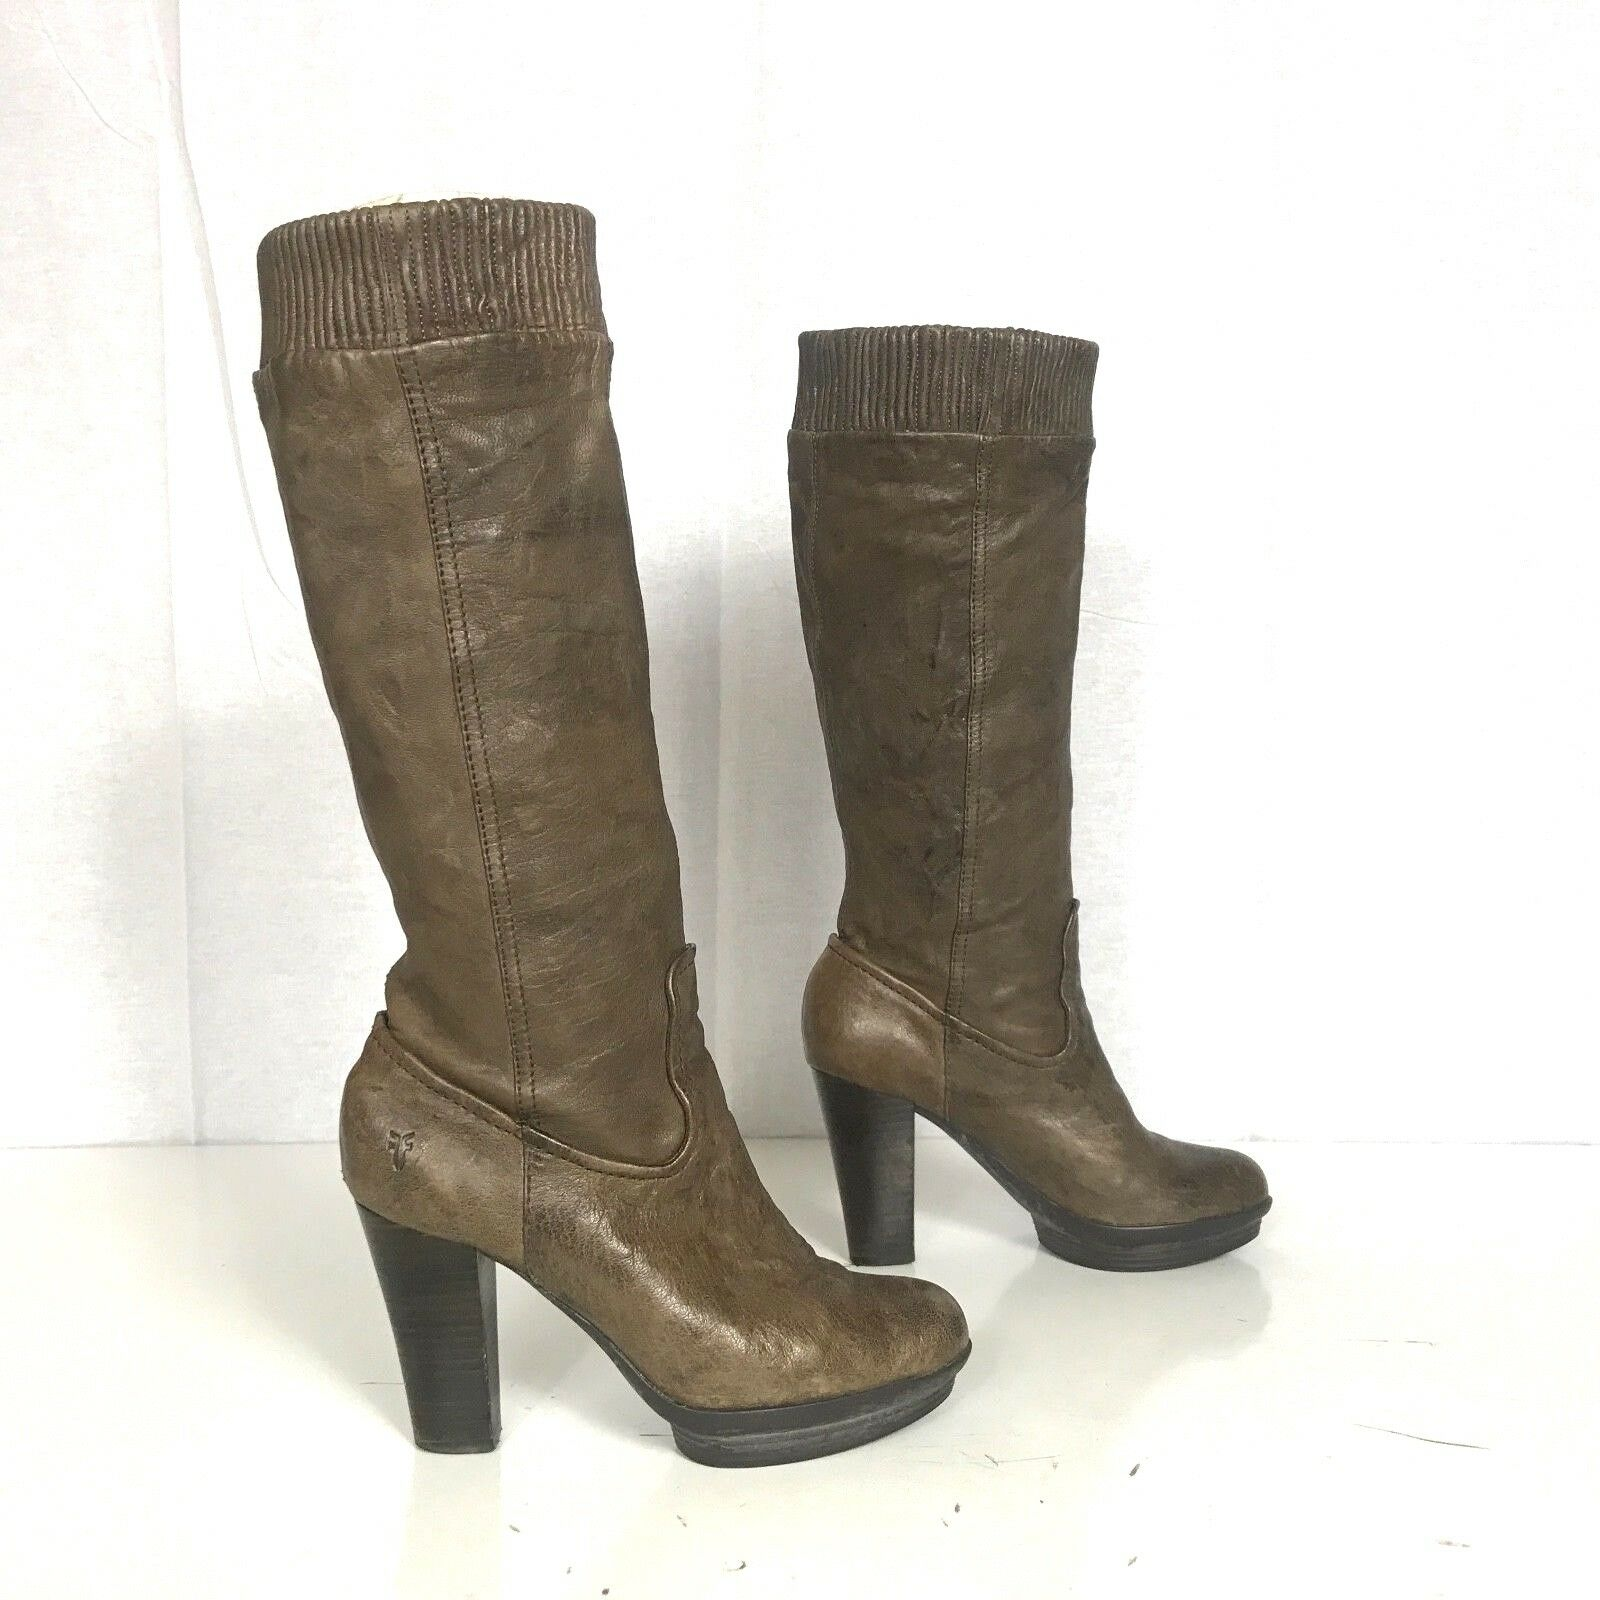 FRYE size 8 MIMI MIMI MIMI SCRUNCH Taupe Leather Women's 76735 shoes Knee High Heel Boots 647428